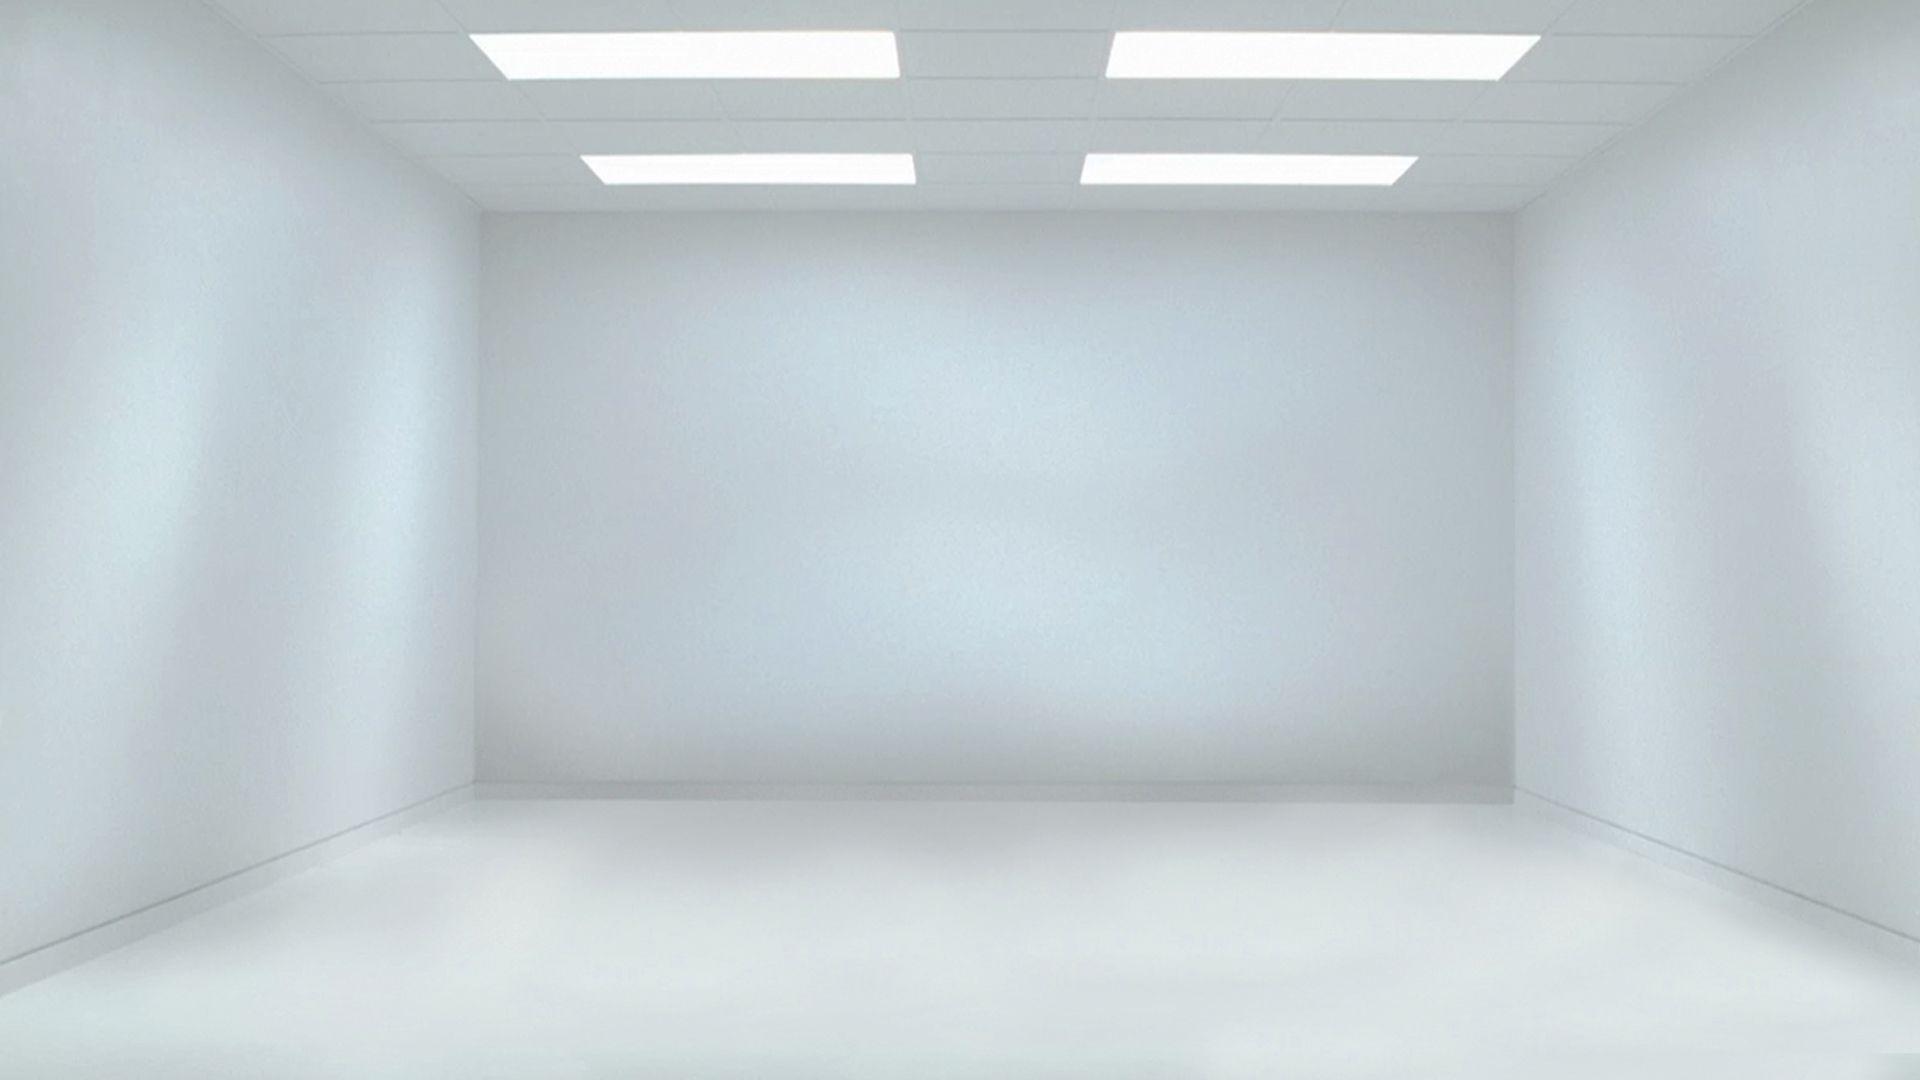 When I See Something Blank Like This Room My Mind Fills With Ideas